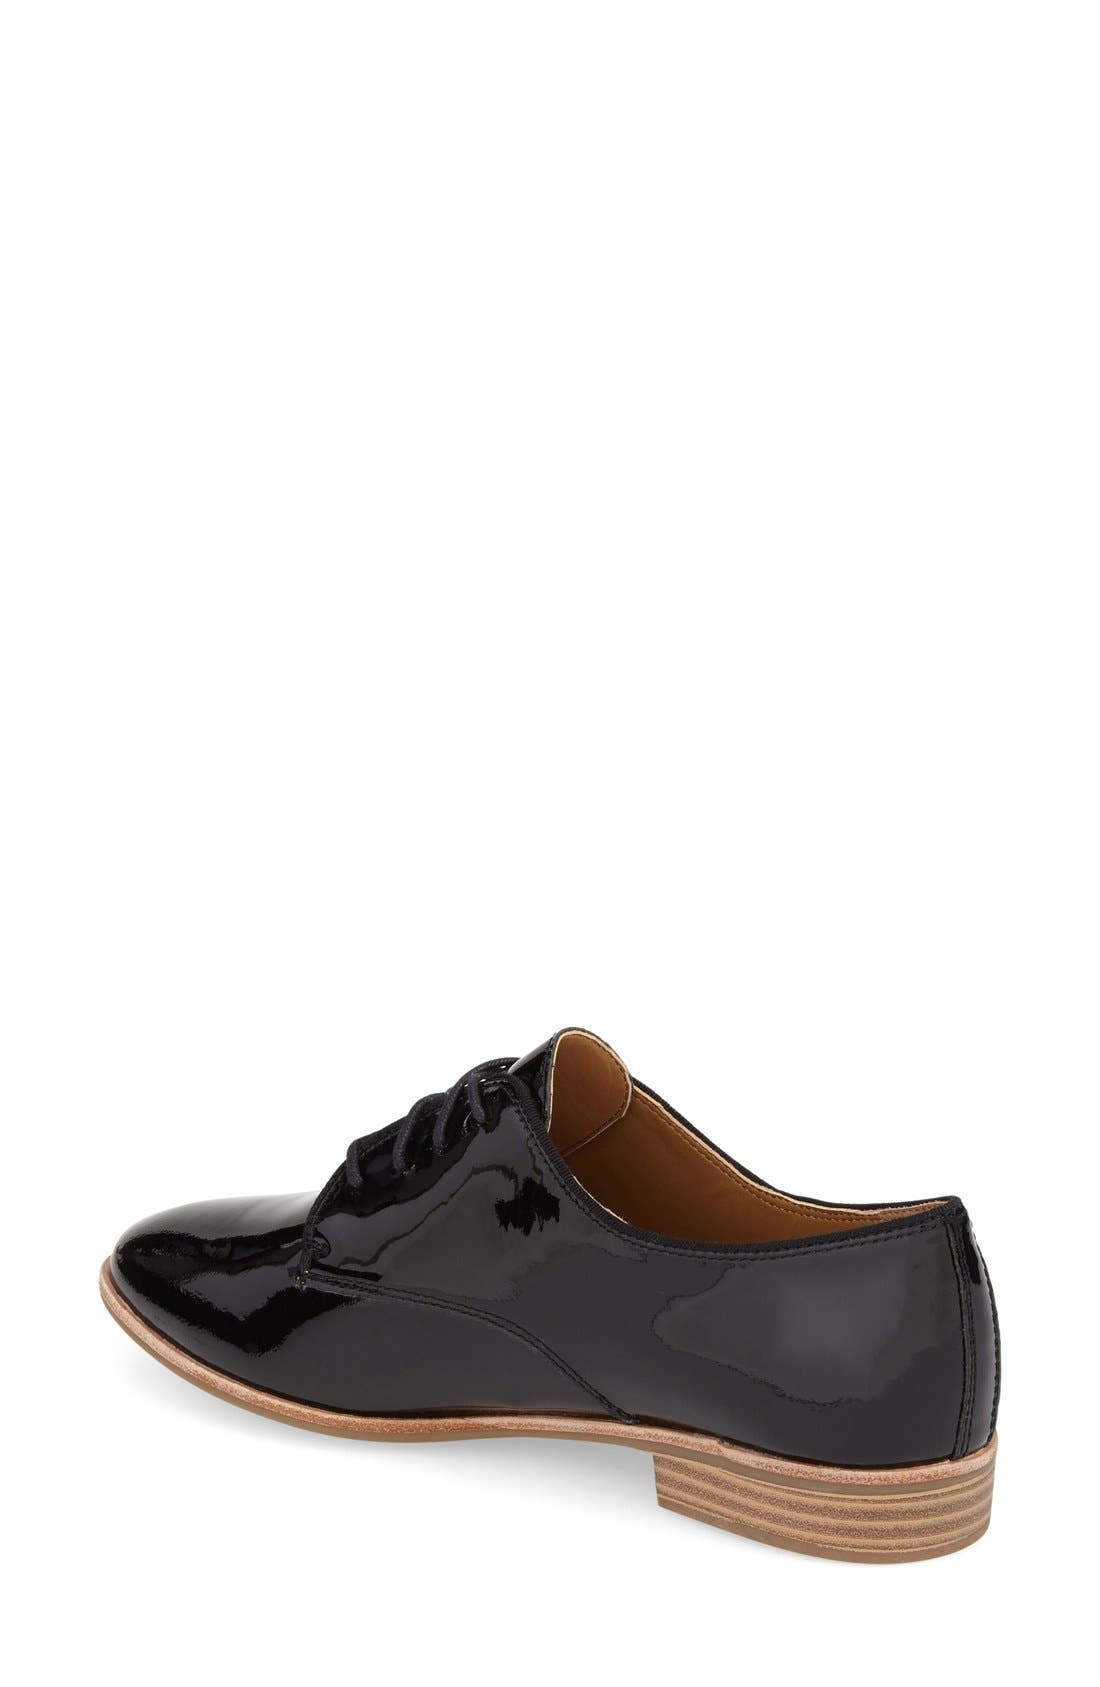 'Ella' Leather Oxford,                             Alternate thumbnail 2, color,                             001